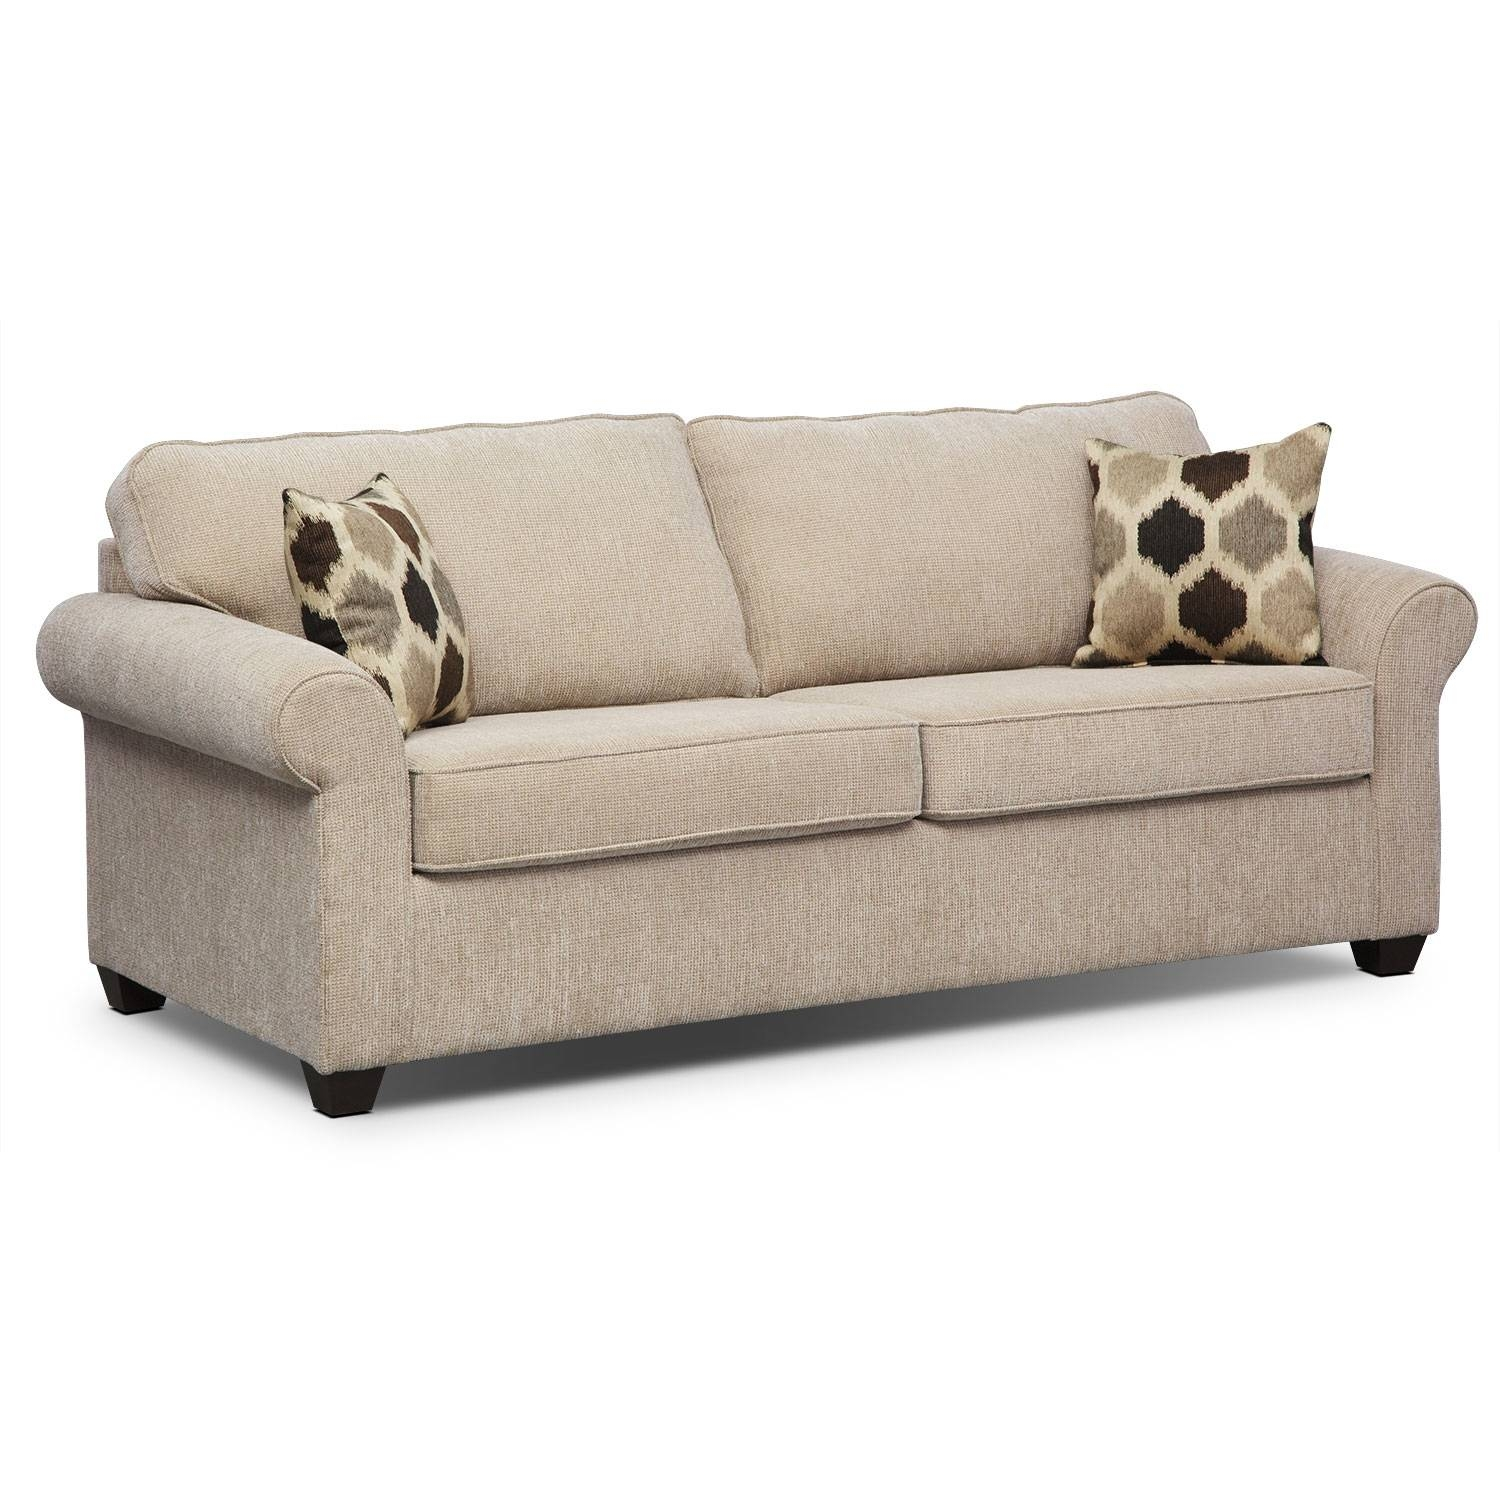 Simmons Sleeper Sofa Easy As Cheap Sectional Sofas On Velvet Sofa Regarding Simmons Sofa Beds (View 9 of 15)